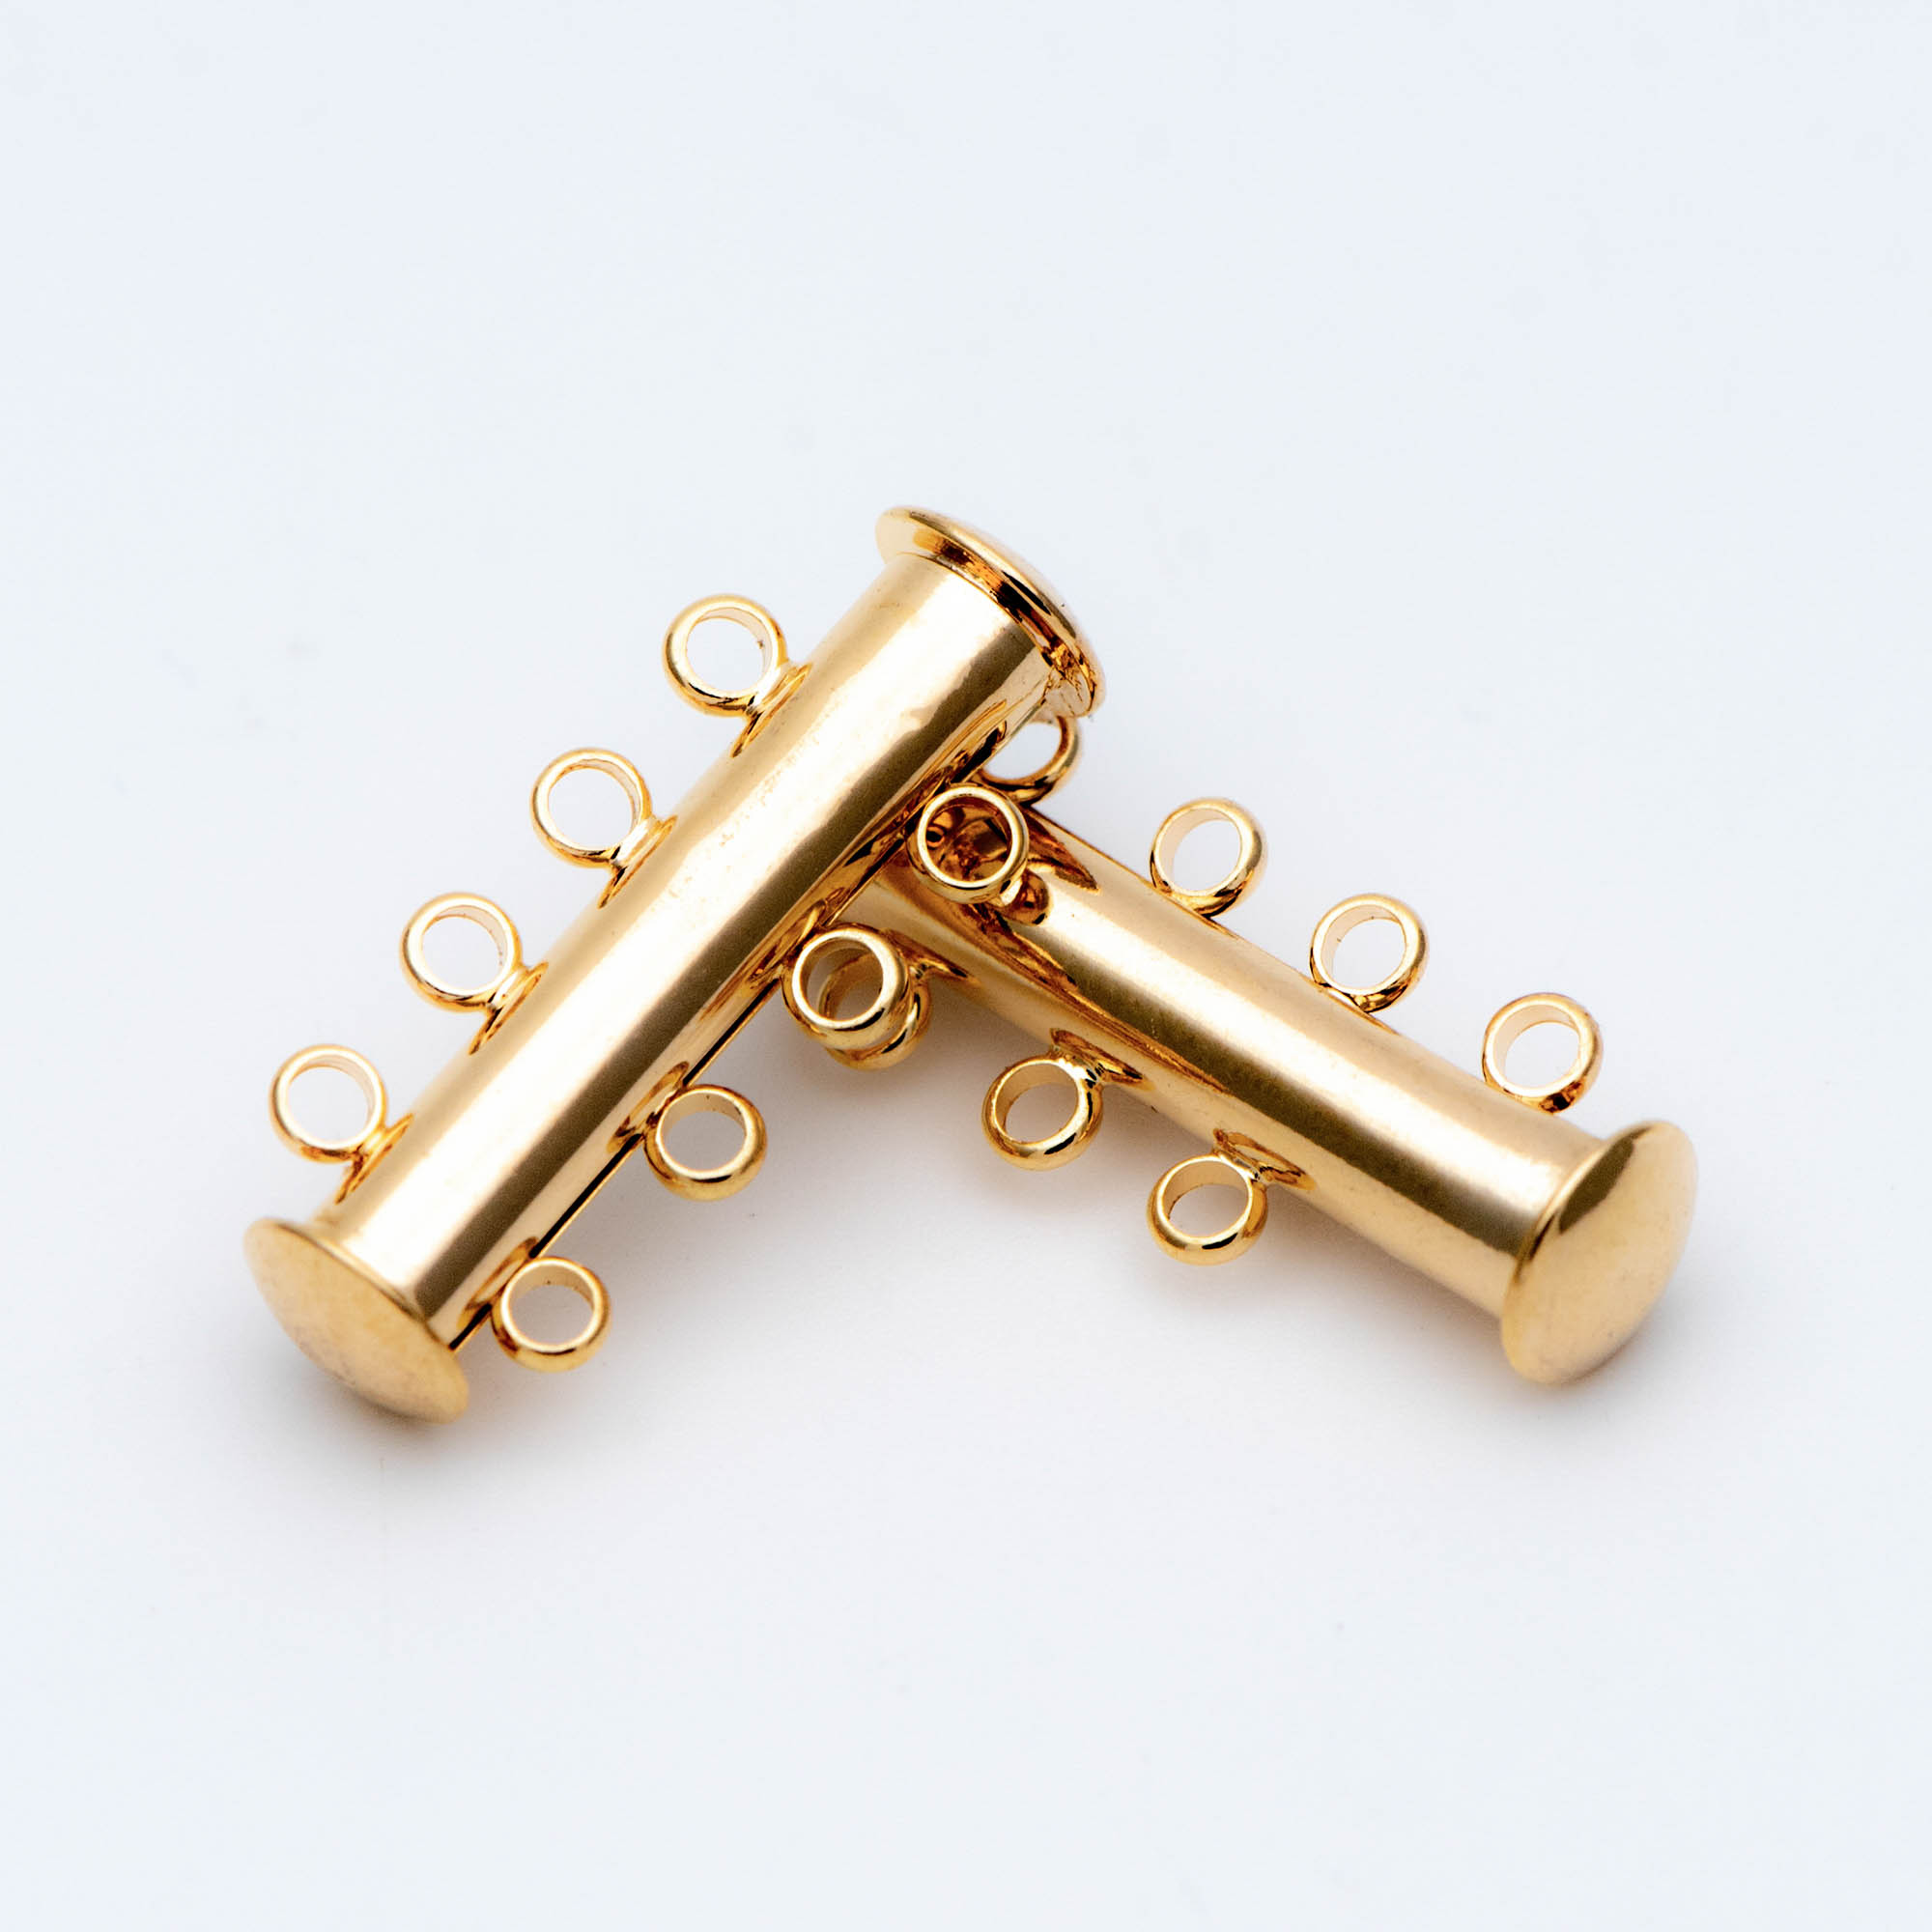 Tube Clasps 4 Rings,Real Gold Plated Brass, Tube Clasp,4 Strand Tube Clasp, Slide Lock Clasp, Bar Clasp (GB-673)